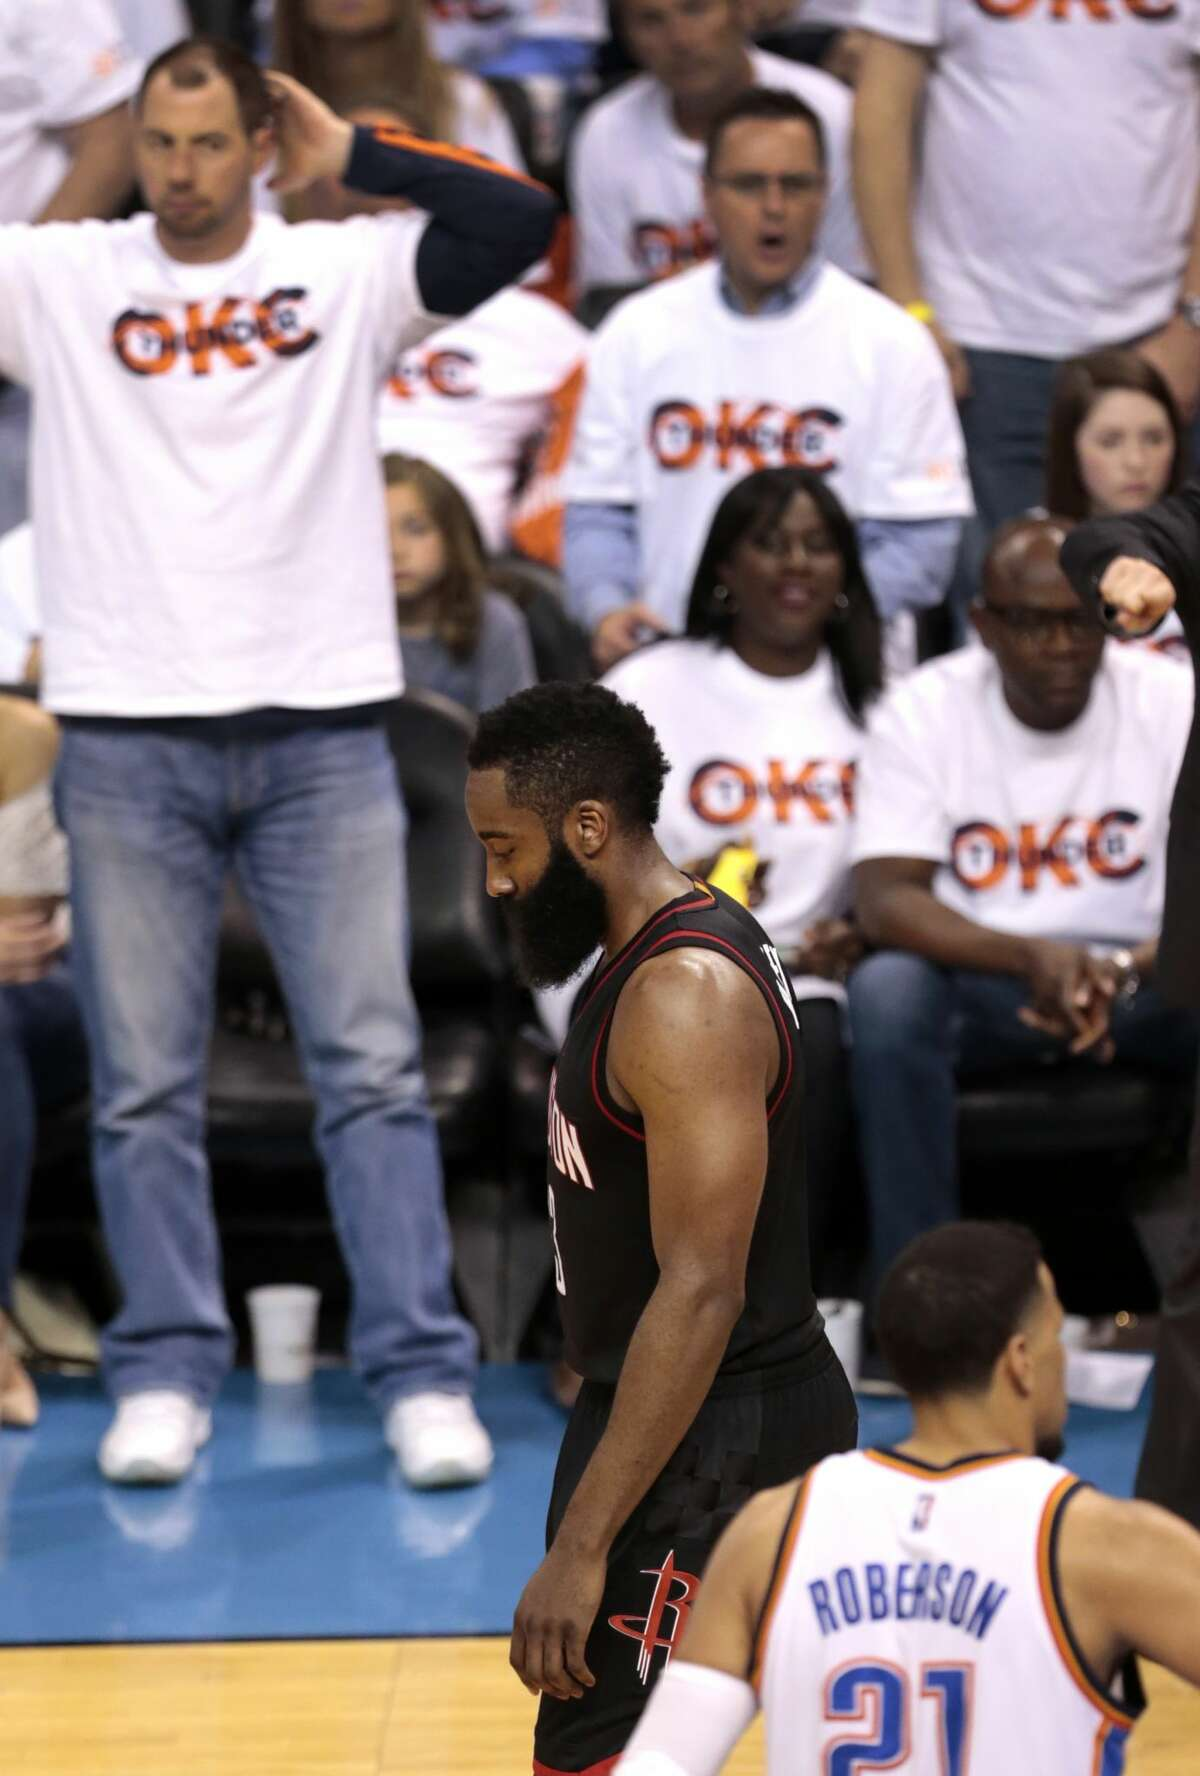 Houston Rockets guard James Harden (13) walks back upcourt after being called for an offensive foul during the fourth quarter against the Oklahoma City Thunder of Game 3 in the NBA Western Conference first-round playoff series at Chesapeake Energy Arena on Friday, April 21, 2017, in Oklahoma City. The Thunder beat the Rockets 115-113. The Rockets lead the best-of-seven series 2-1. ( Brett Coomer / Houston Chronicle )